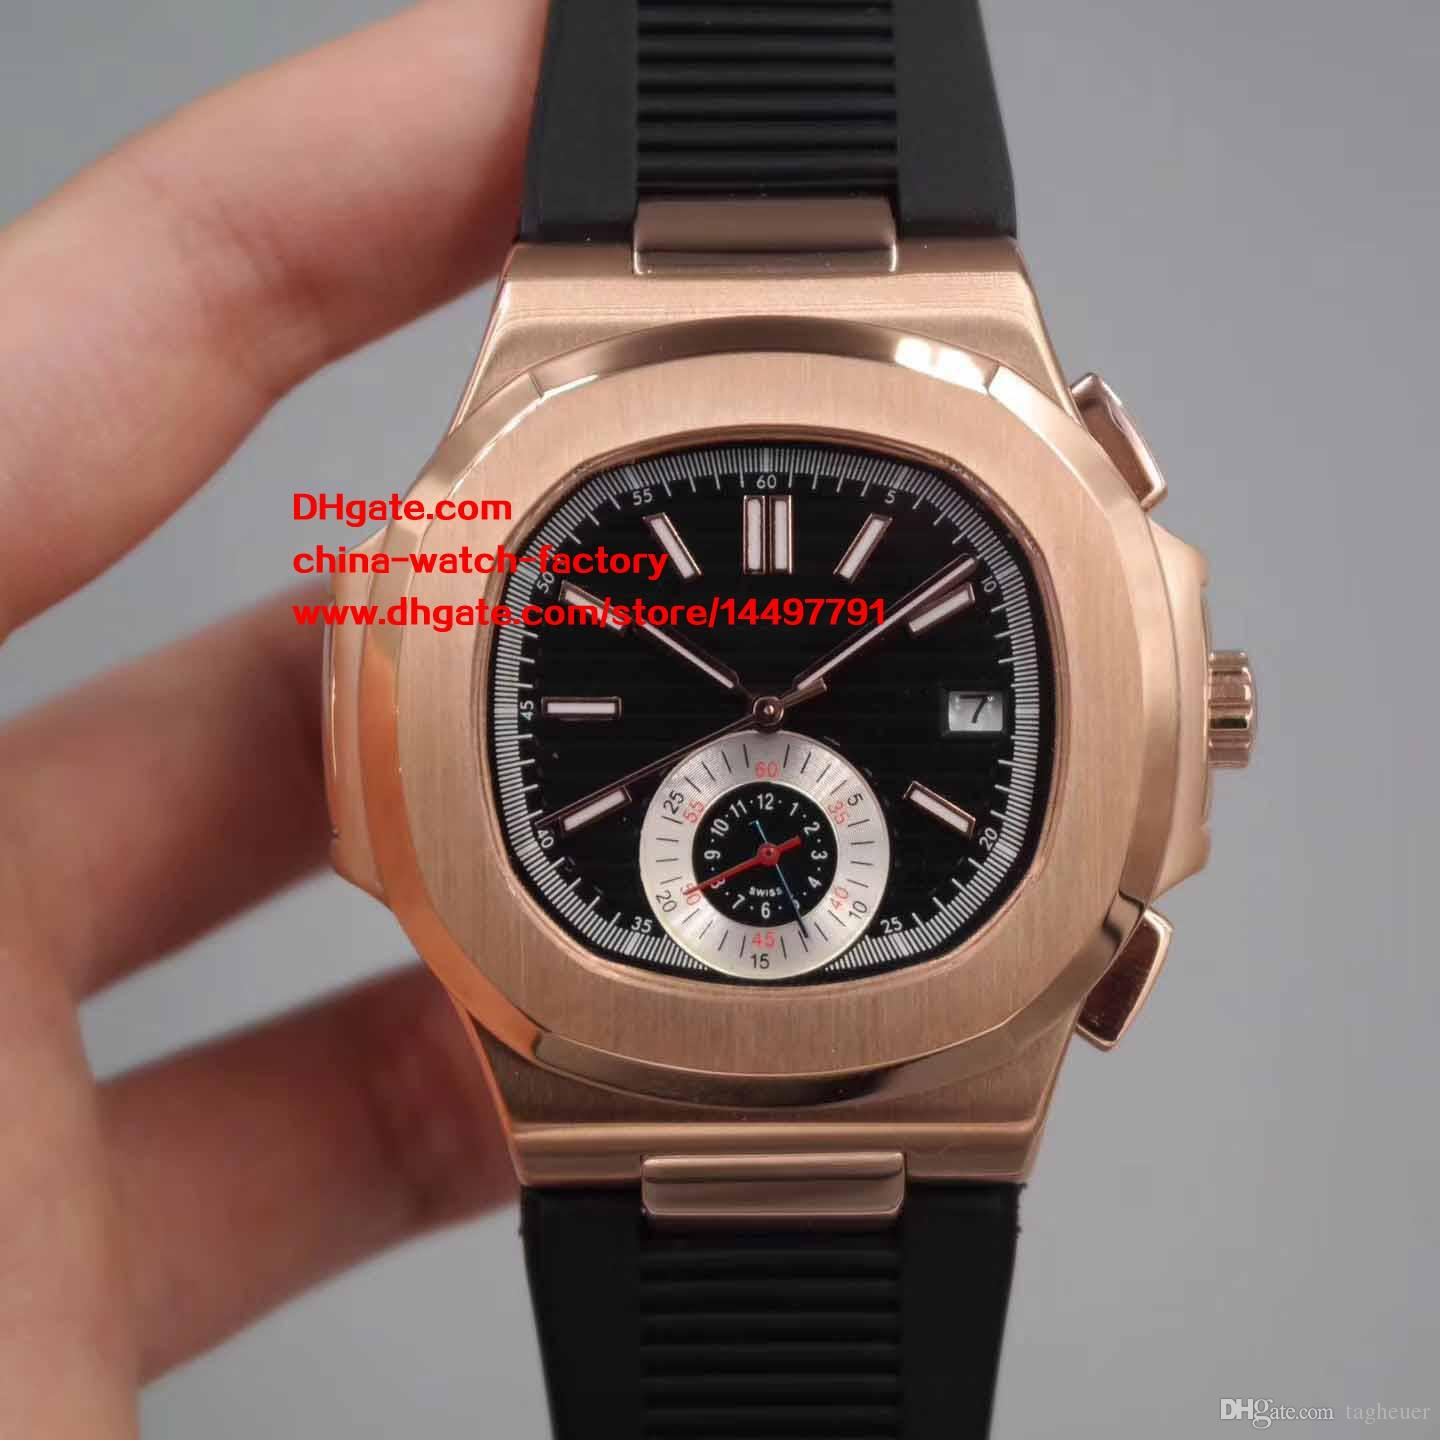 living watches items swiss qatar replica rolex highest jewelry quality